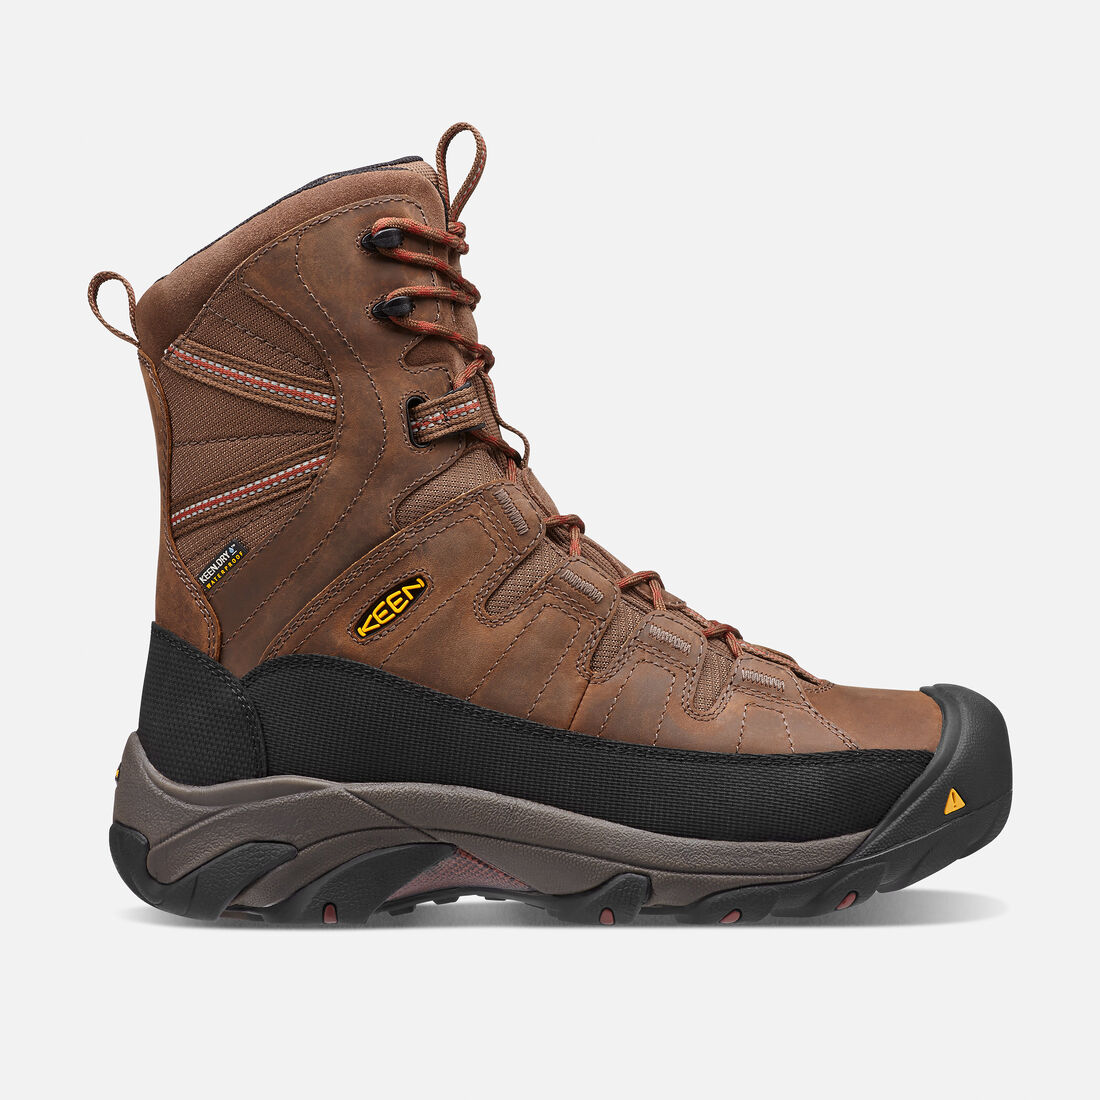 Men's Minot Insulated (Steel Toe) in Cascade Brown/Bossa Nova - large view.